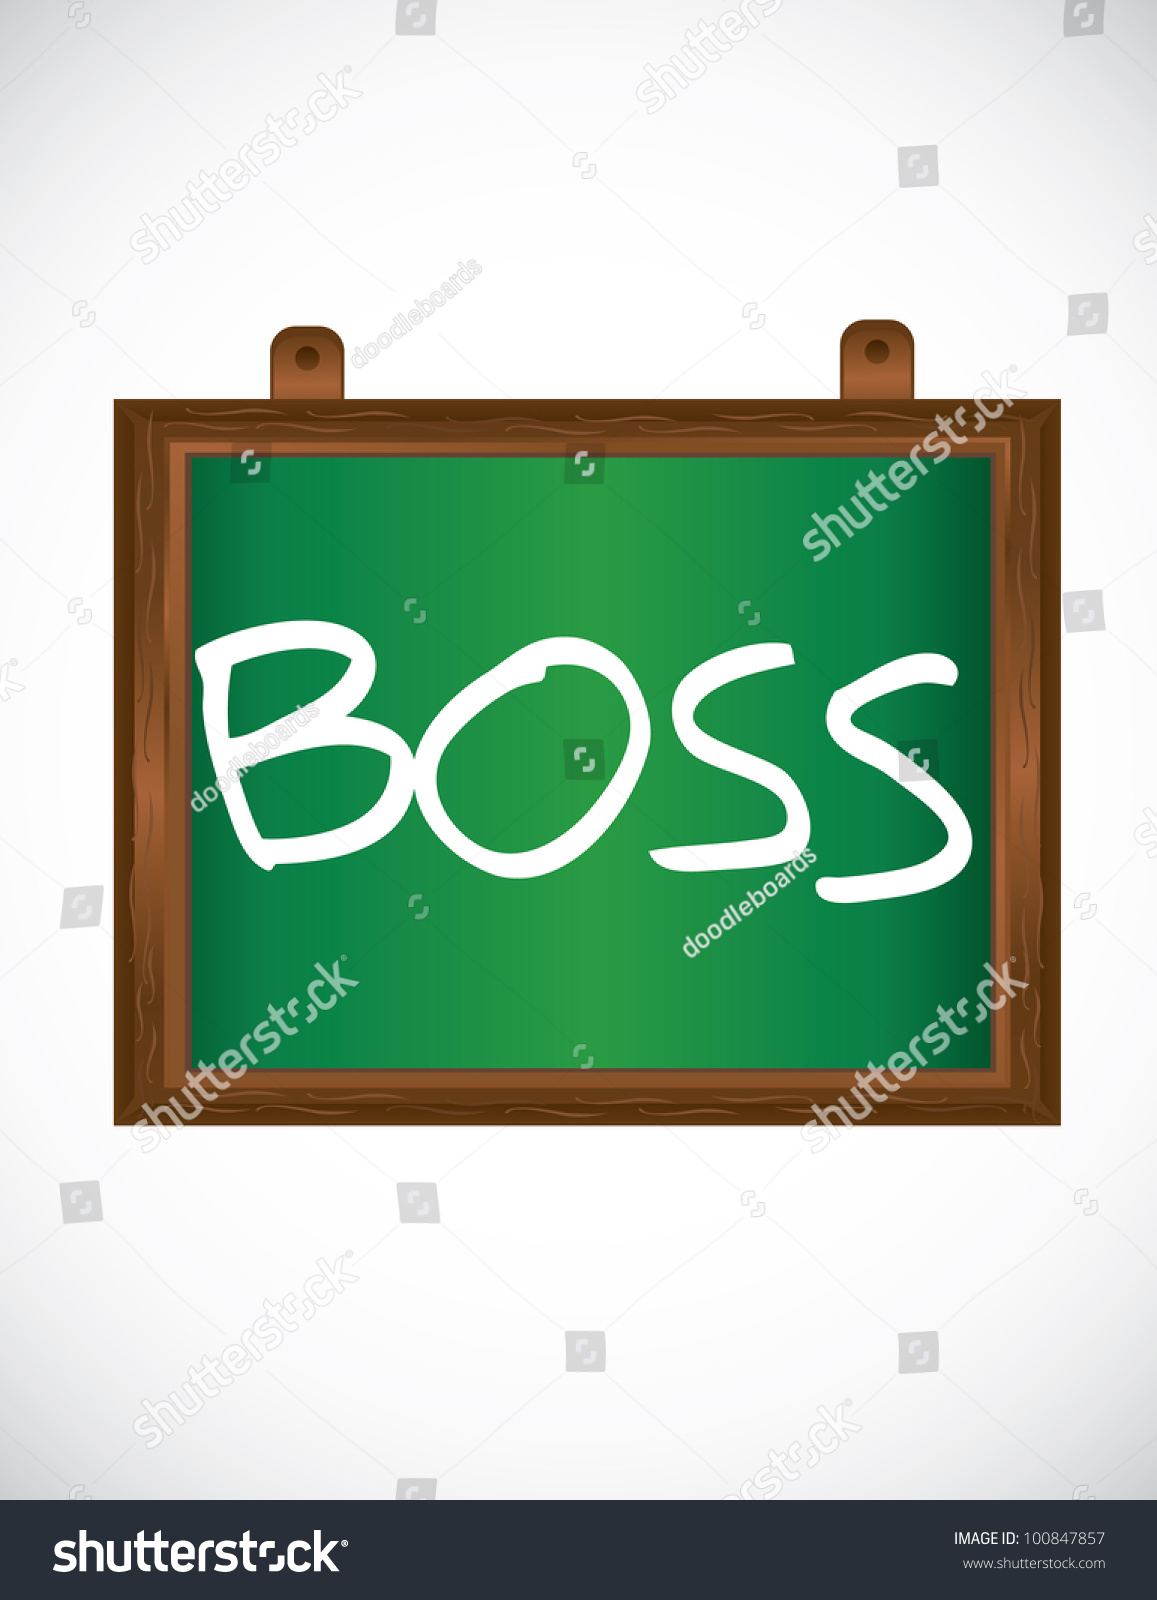 Boss - definition of boss by The Free Dictionary